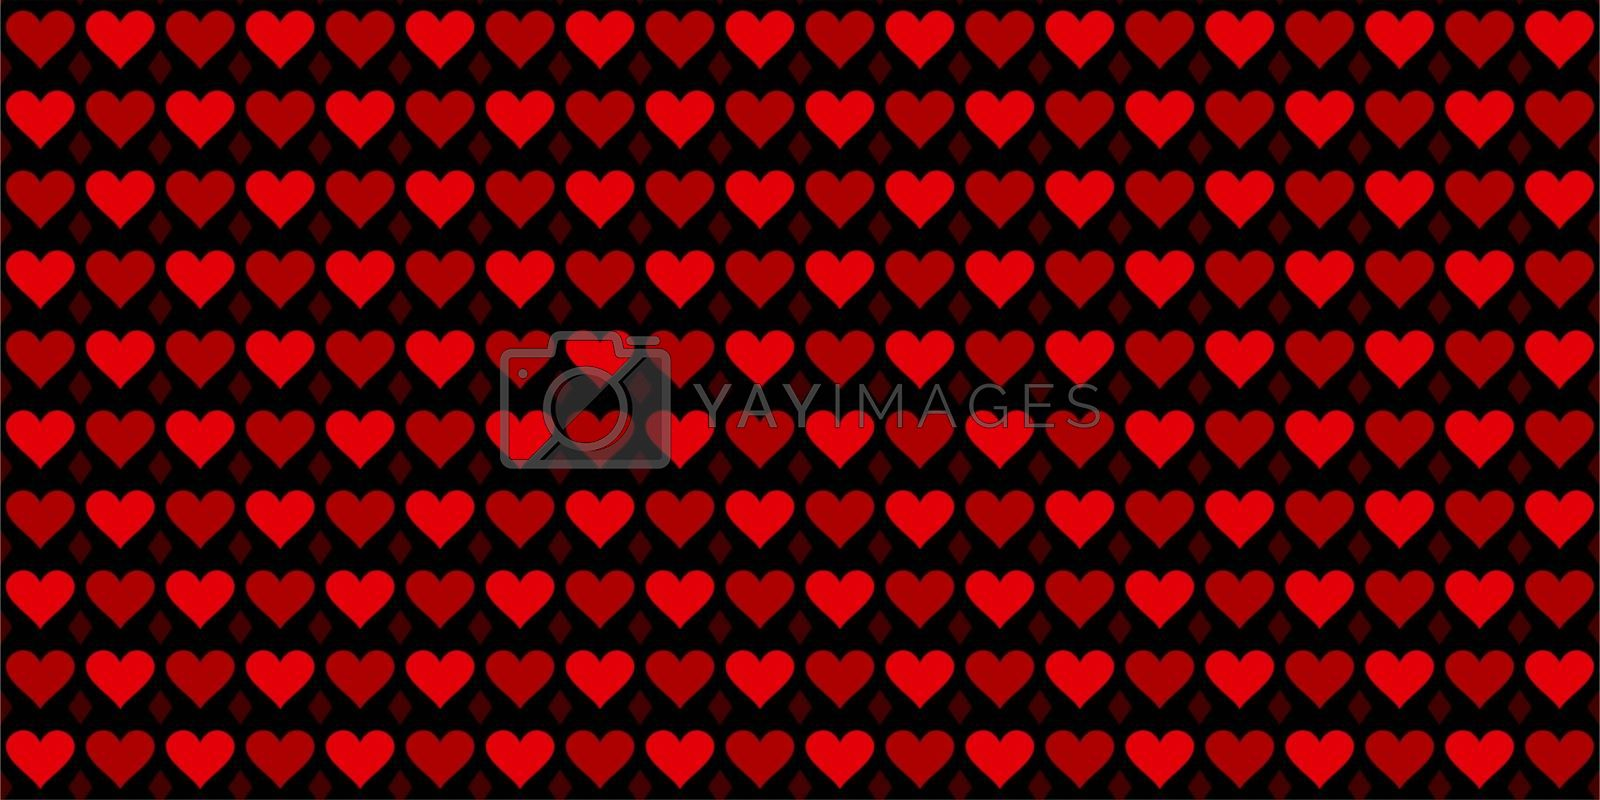 Colorful Red Hearts Seamless Pattern. Vector Illustration Background Art. Vector illustration